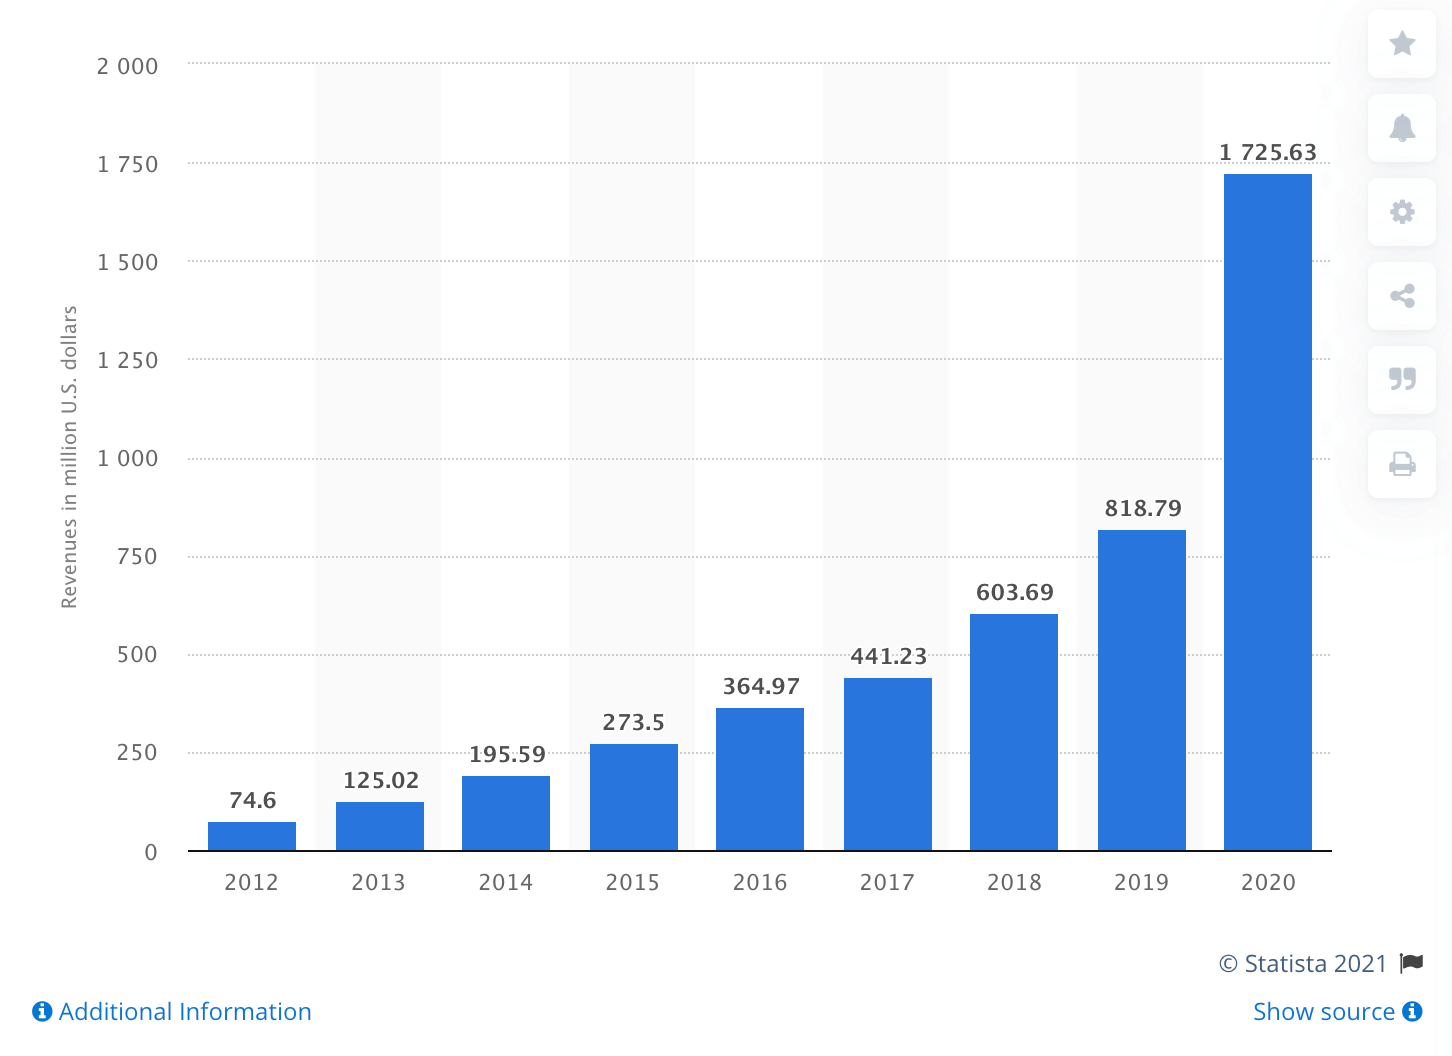 Etsy's growth